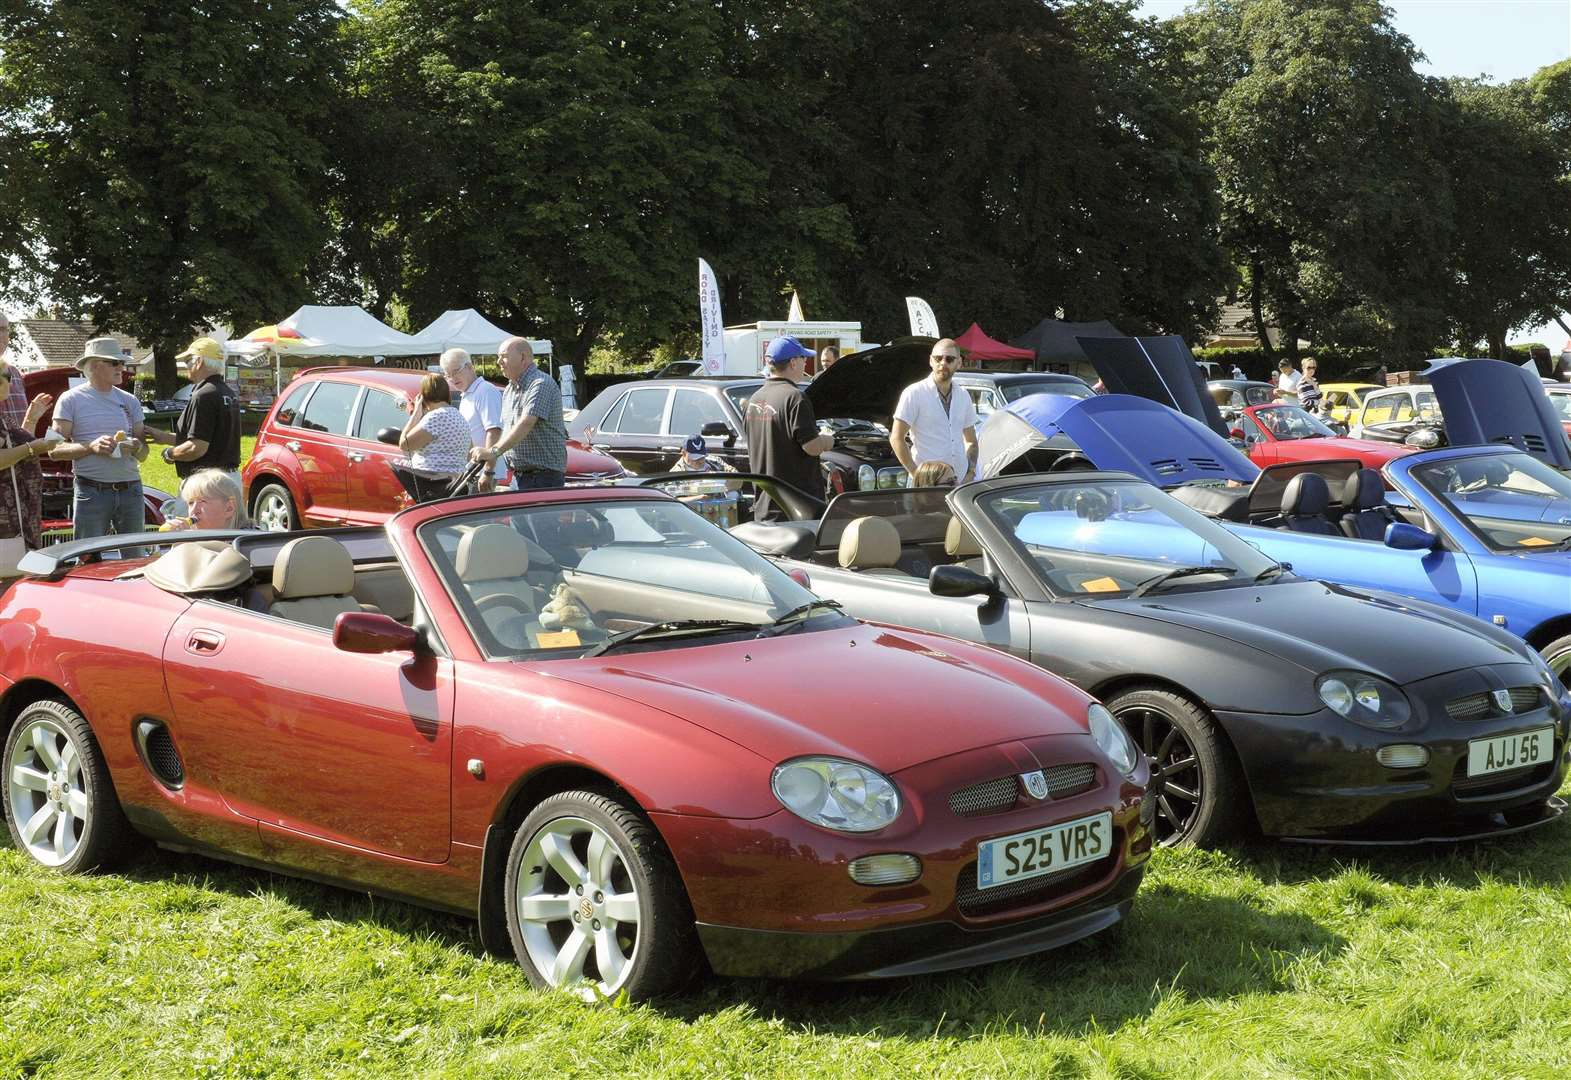 Swaffham gears up for car and fun day